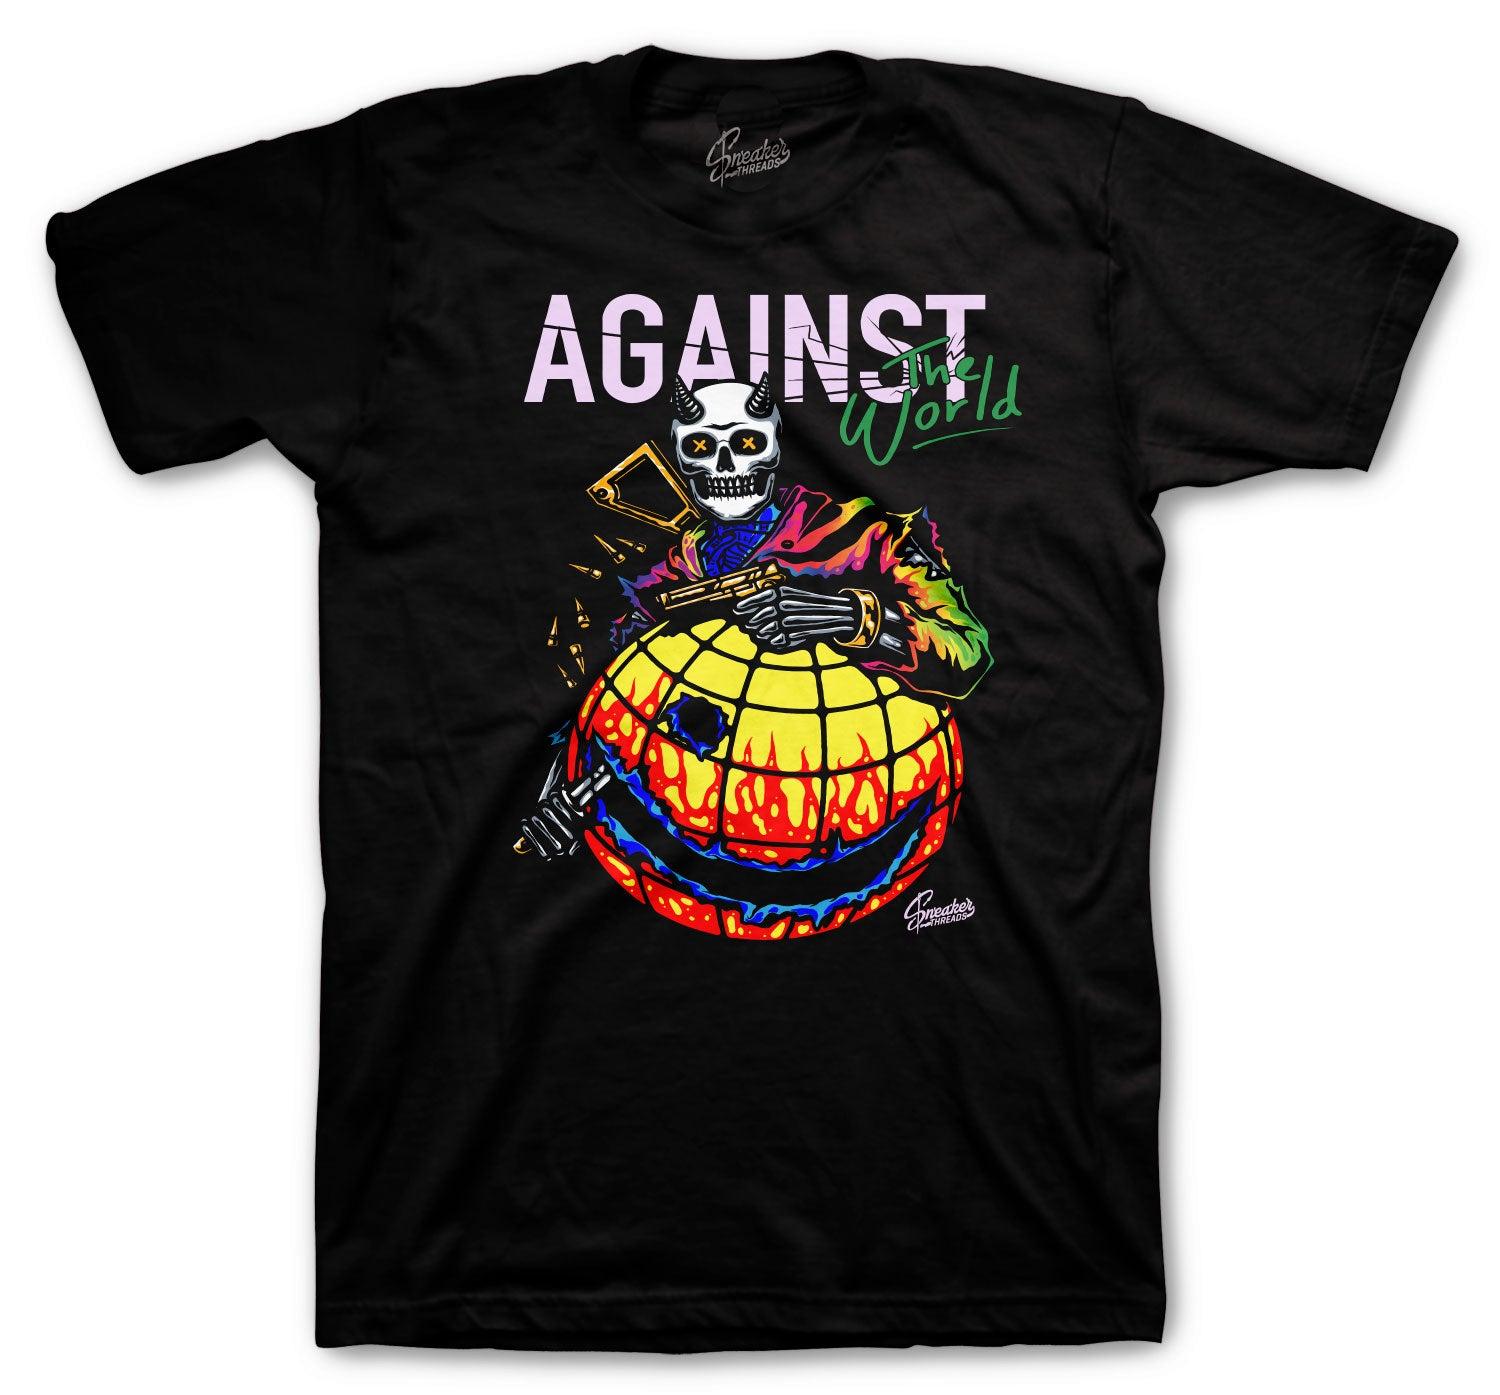 Jordan 1 Balvin Shirt -  Against The World - Black